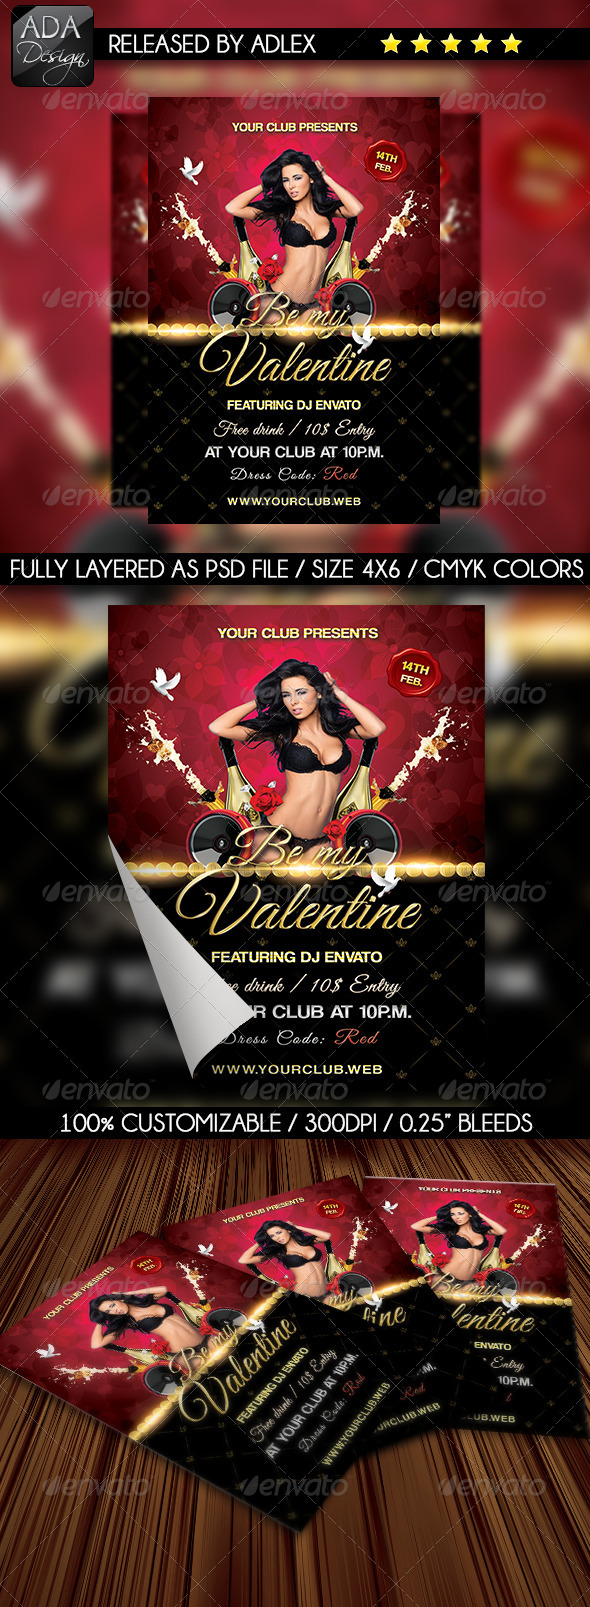 Be my Valentine - Valentine's Day Flyer - Holidays Events